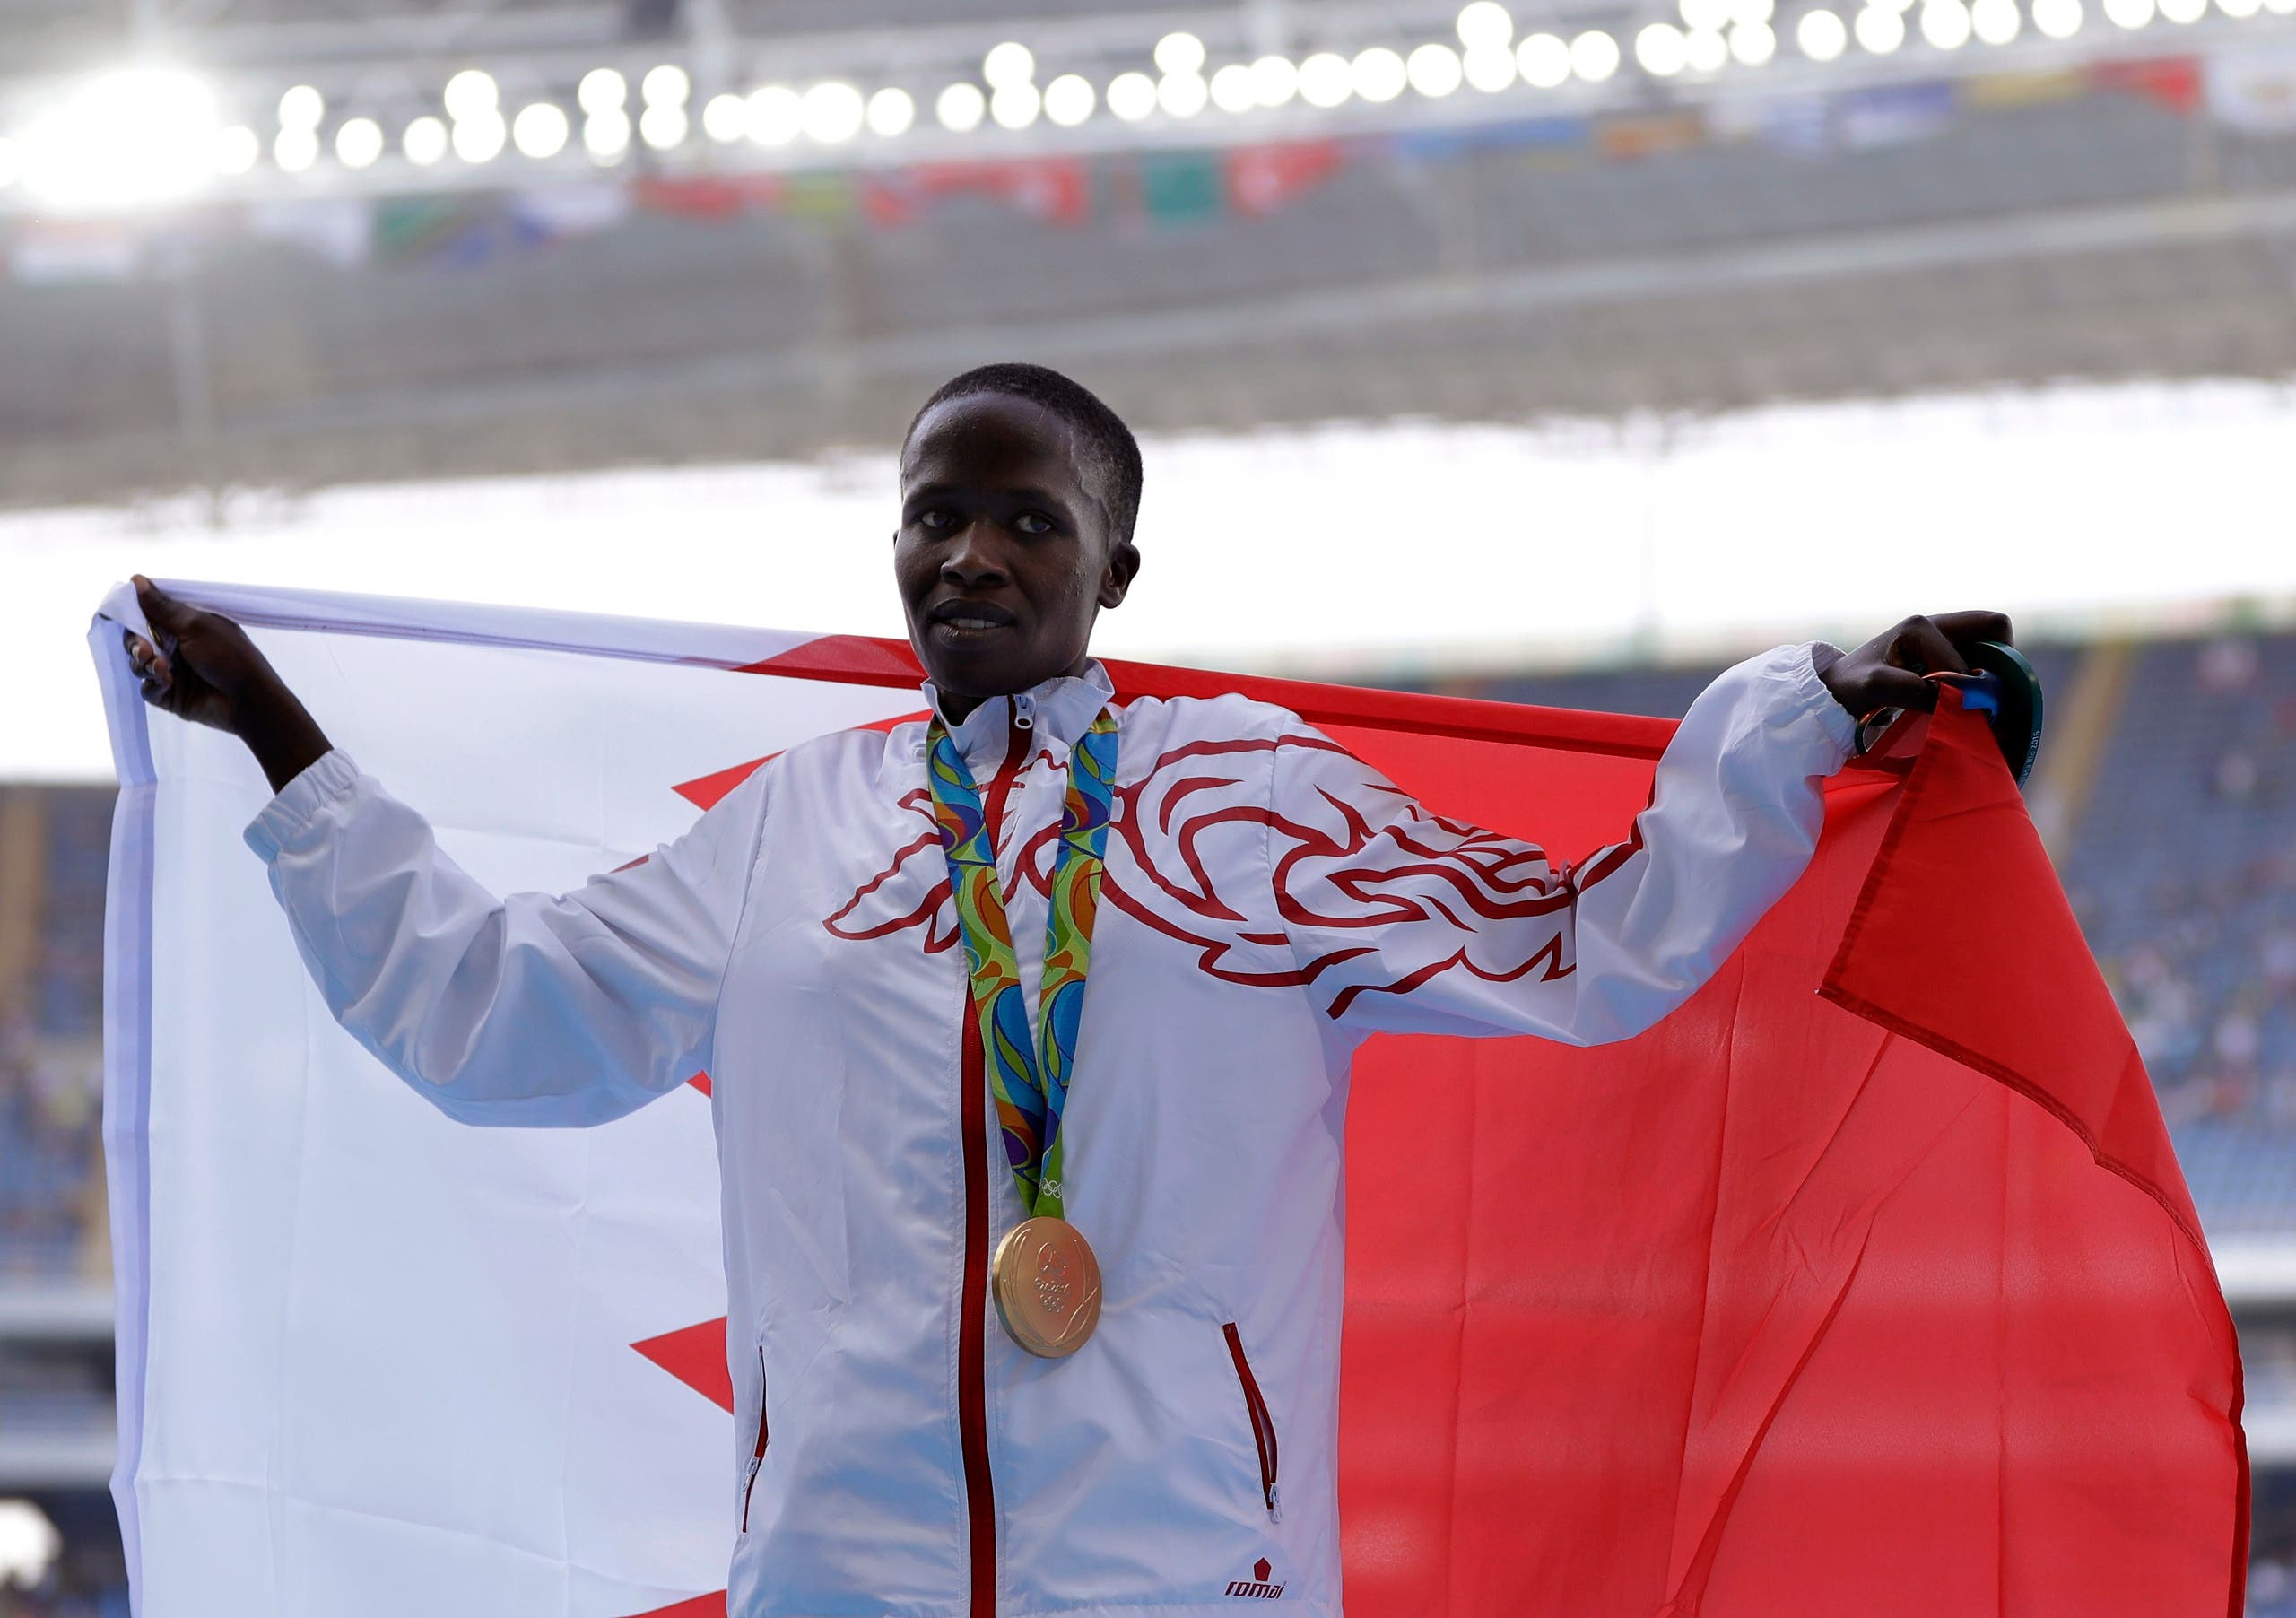 Bahrain's gold medal winner Ruth Jebet holds the Bahrain flag during the ceremony for the women's 3000-meter steeplechase final during the athletics competitions of the 2016 Summer Olympics at the Olympic stadium in Rio de Janeiro, Brazil, Monday, Aug. 15, 2016. (AP